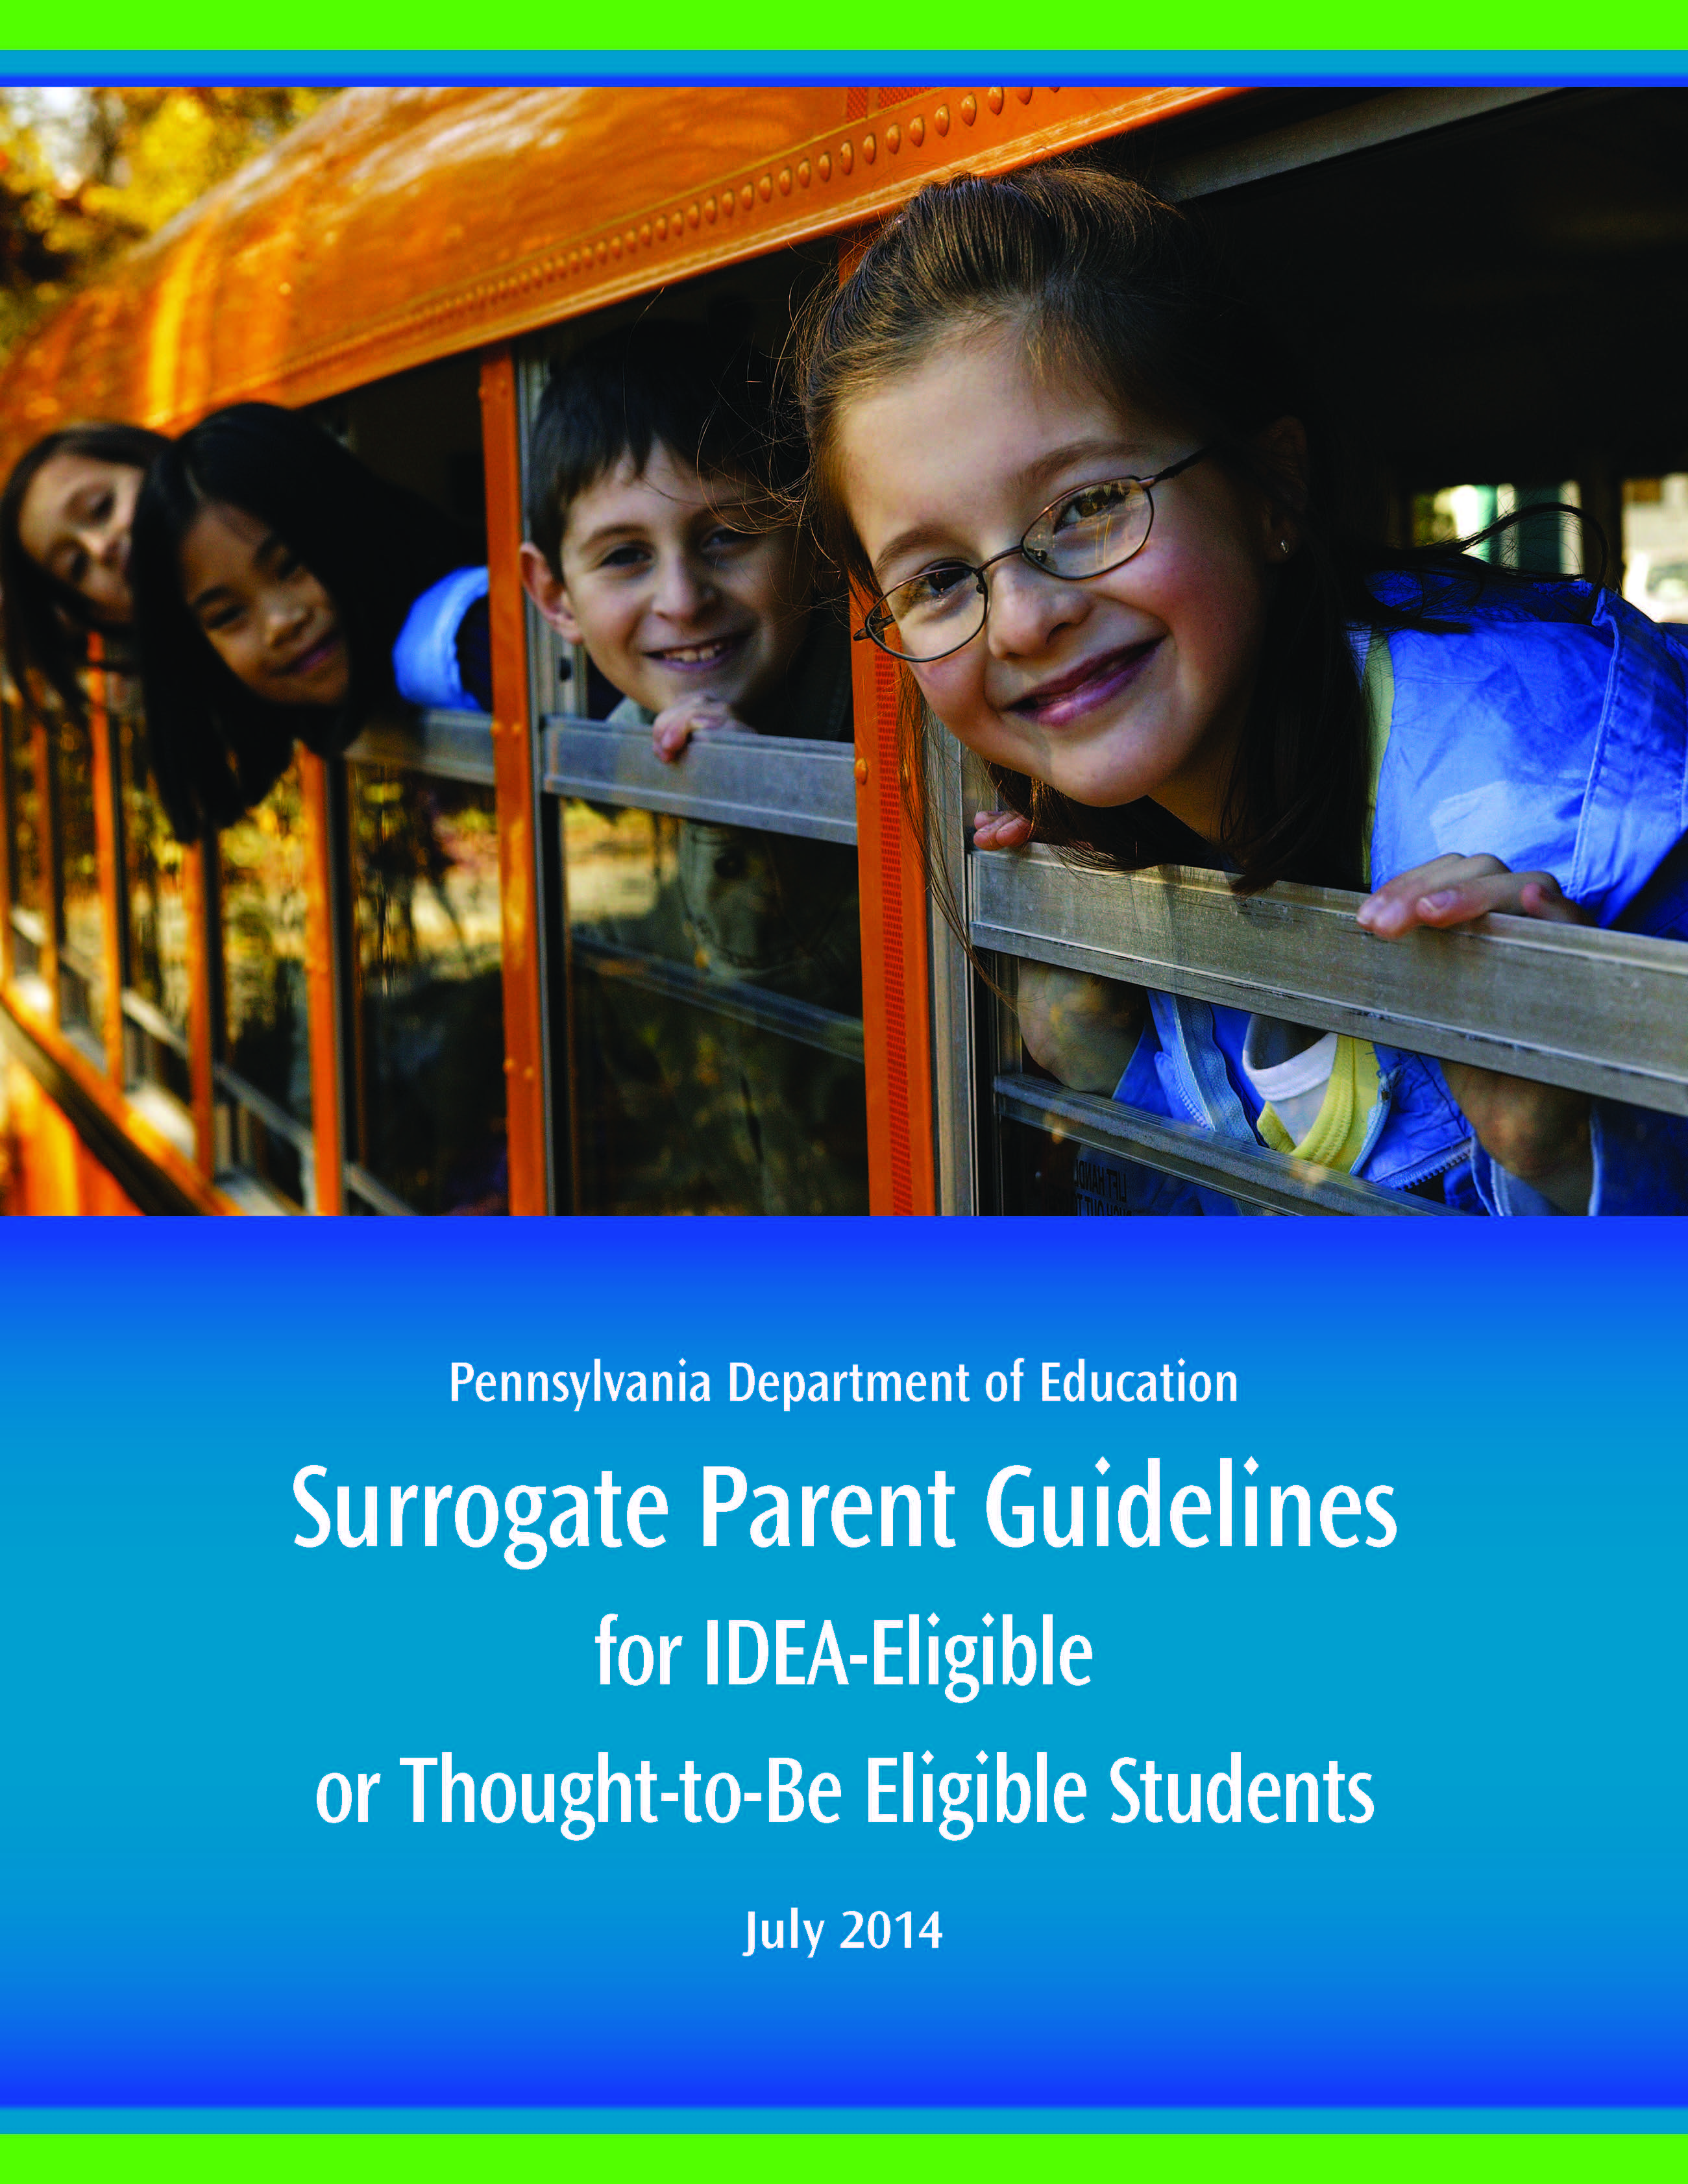 Surrogate Parent Guidelines for IDEA-Eligible or Thought-to-Be Eligible Students